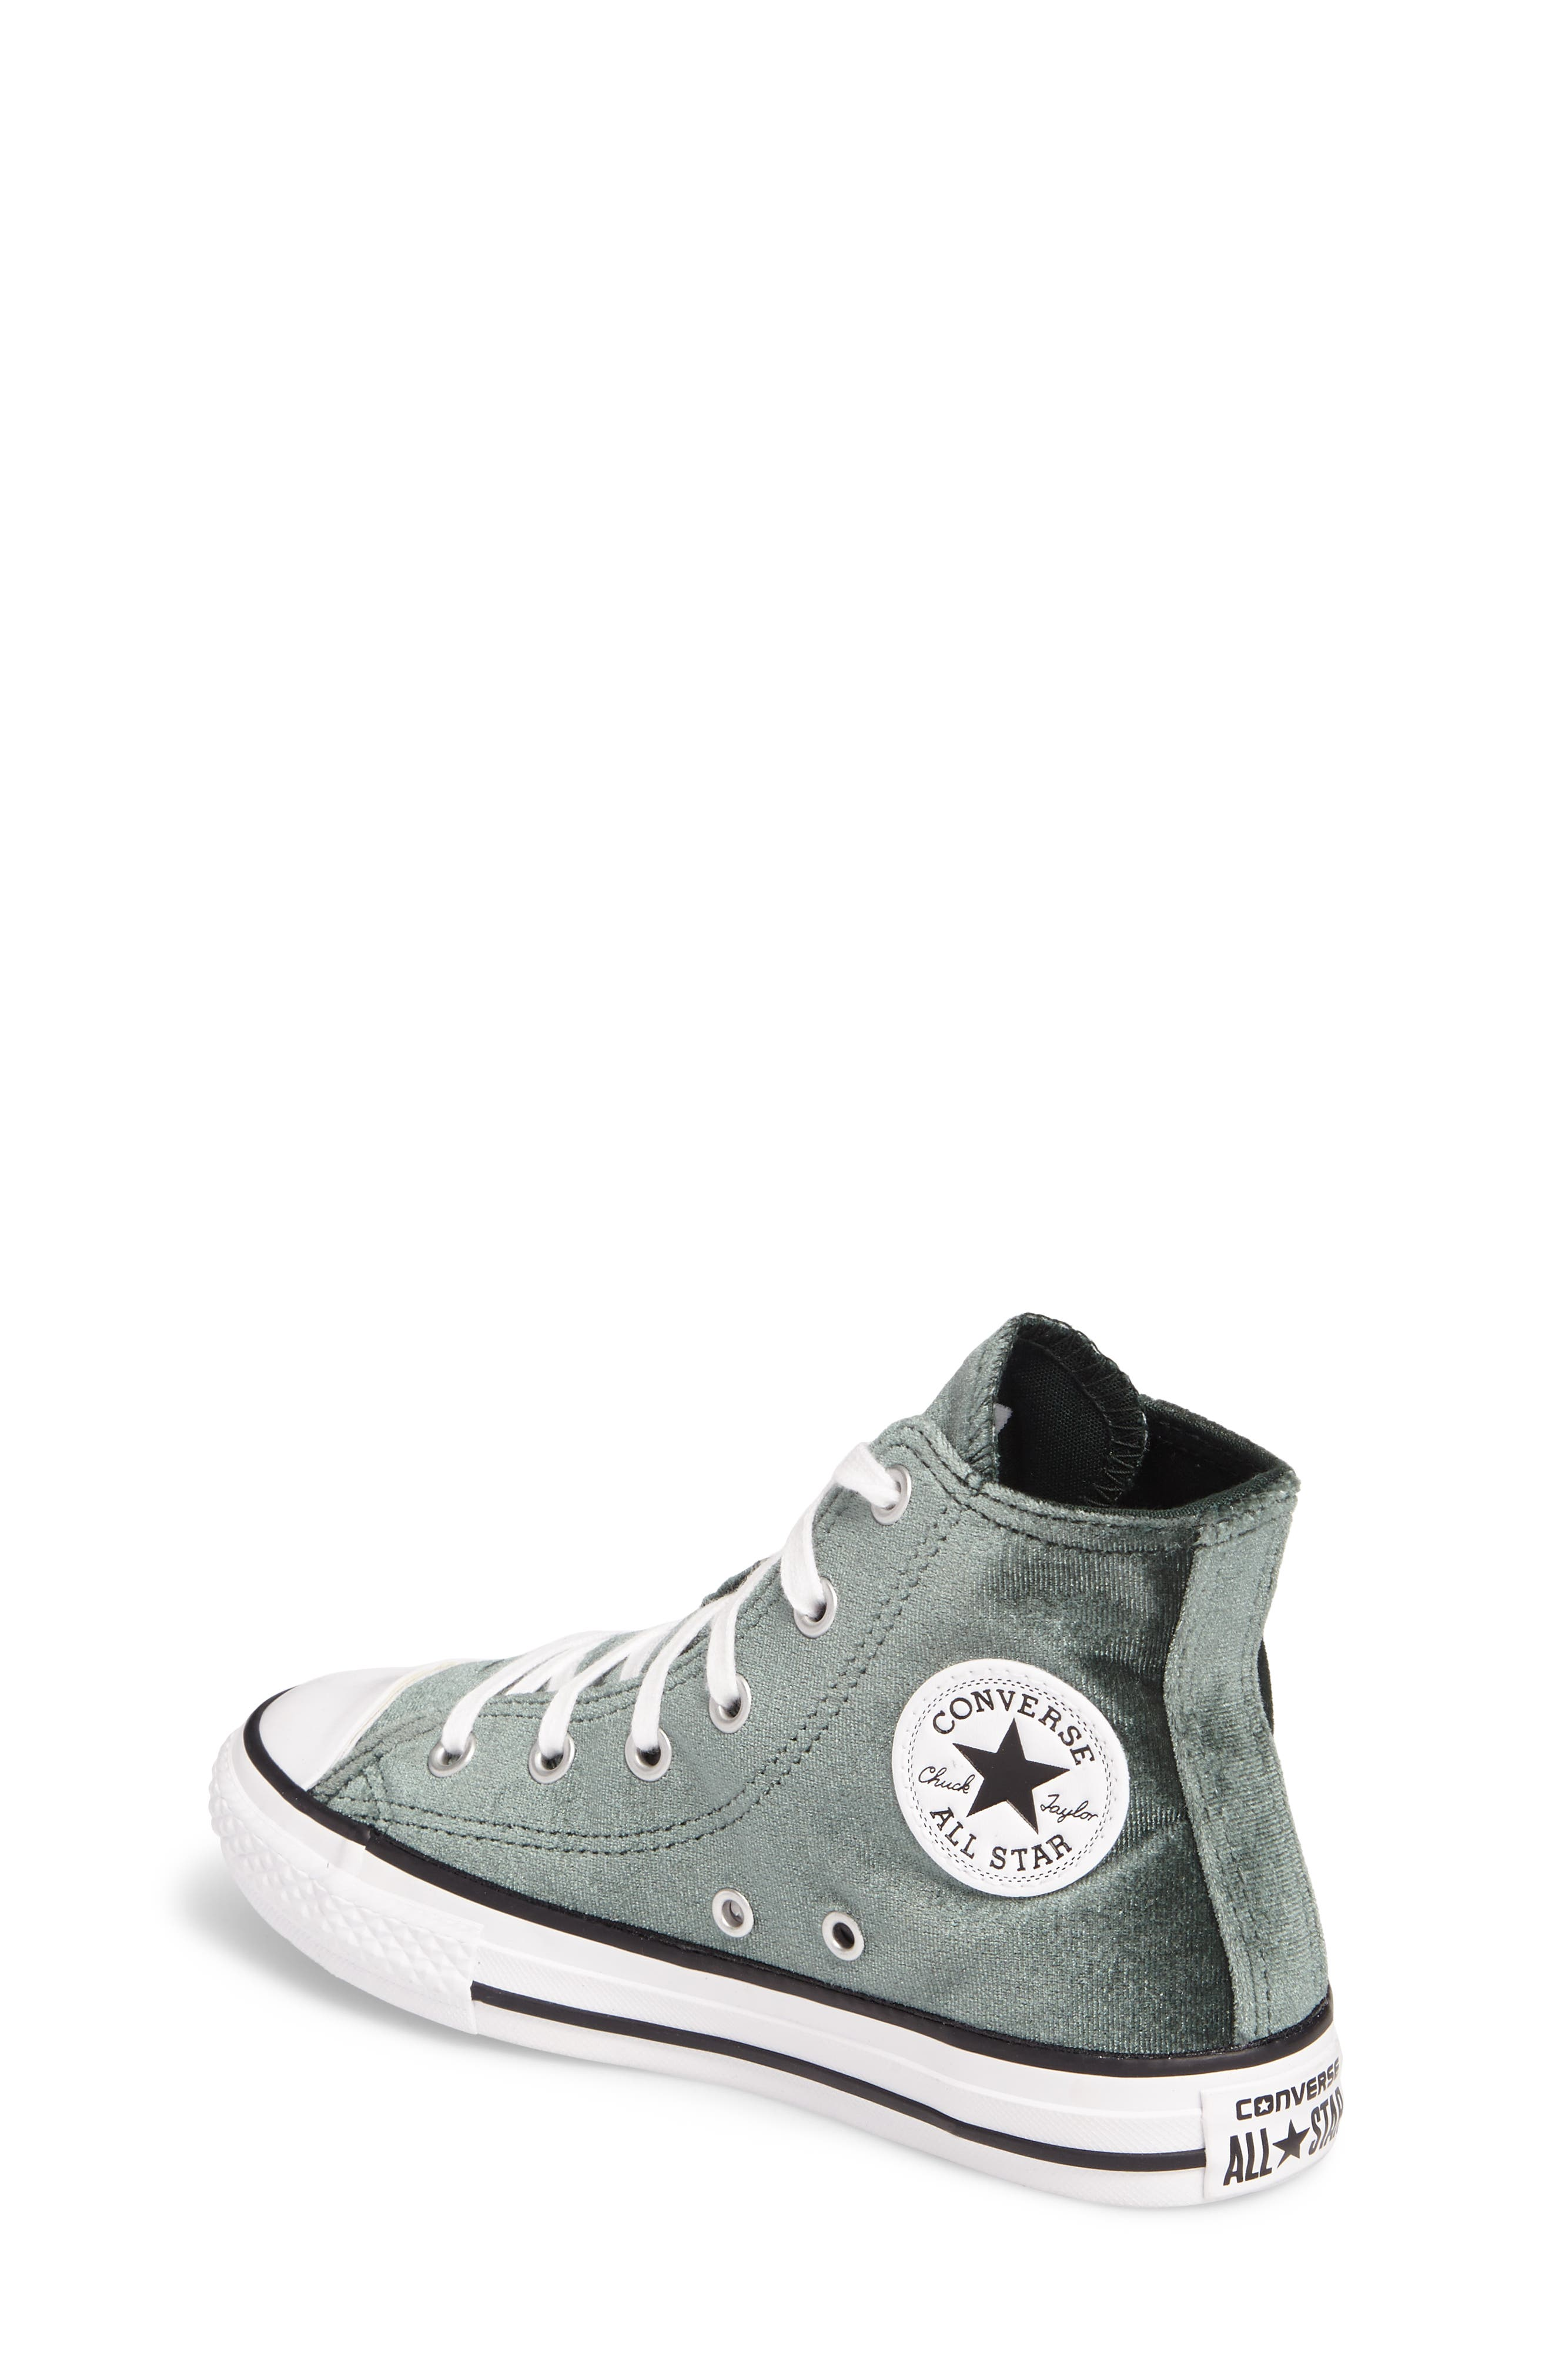 Chuck Taylor<sup>®</sup> All Star<sup>®</sup> Velvet High Top Sneaker,                             Alternate thumbnail 2, color,                             300